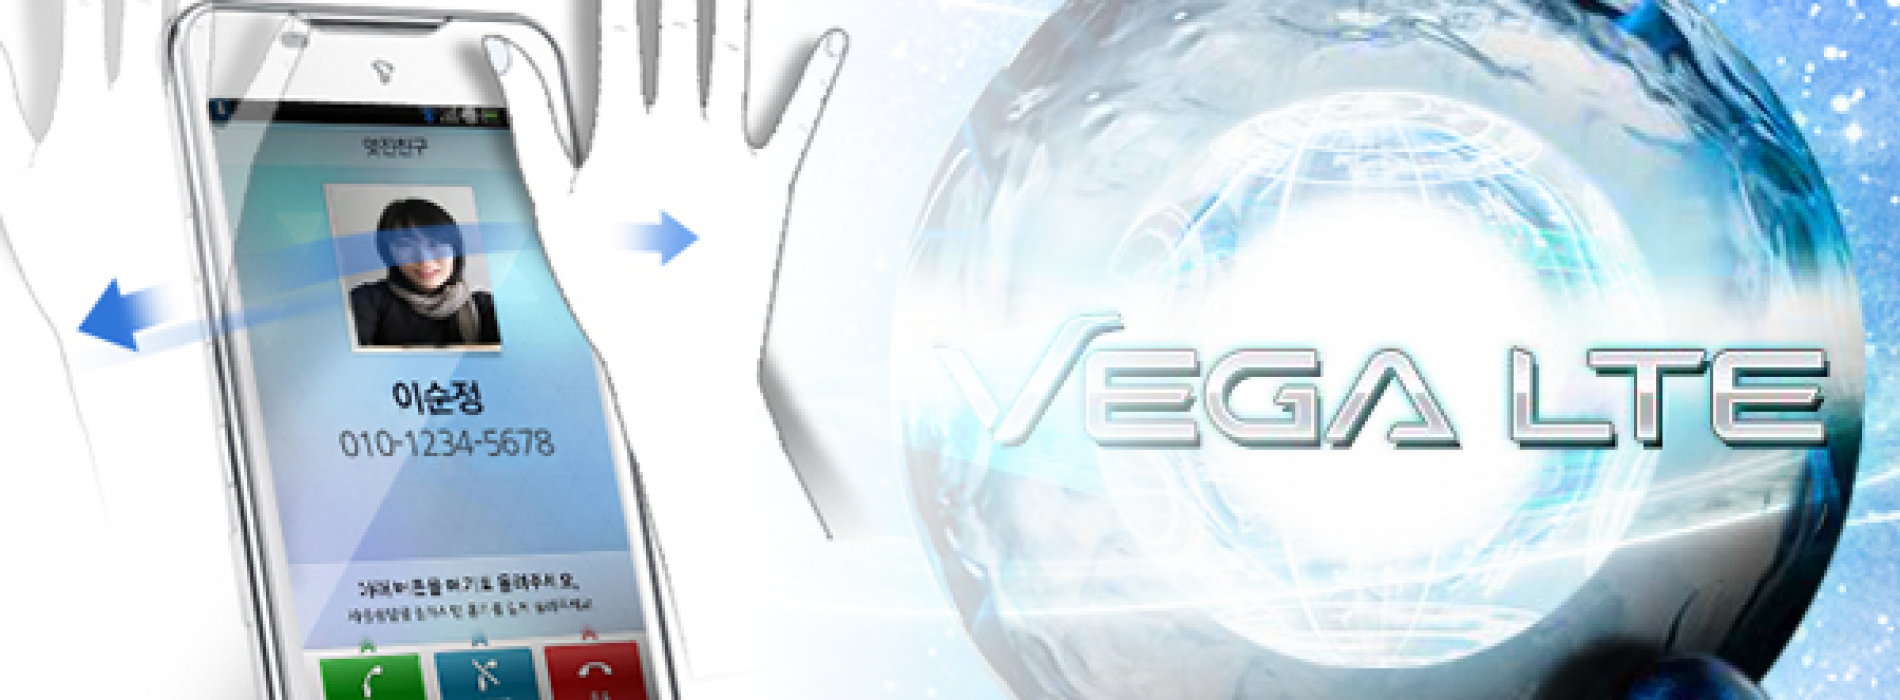 Pantech Vega LTE to feature gesture recognition